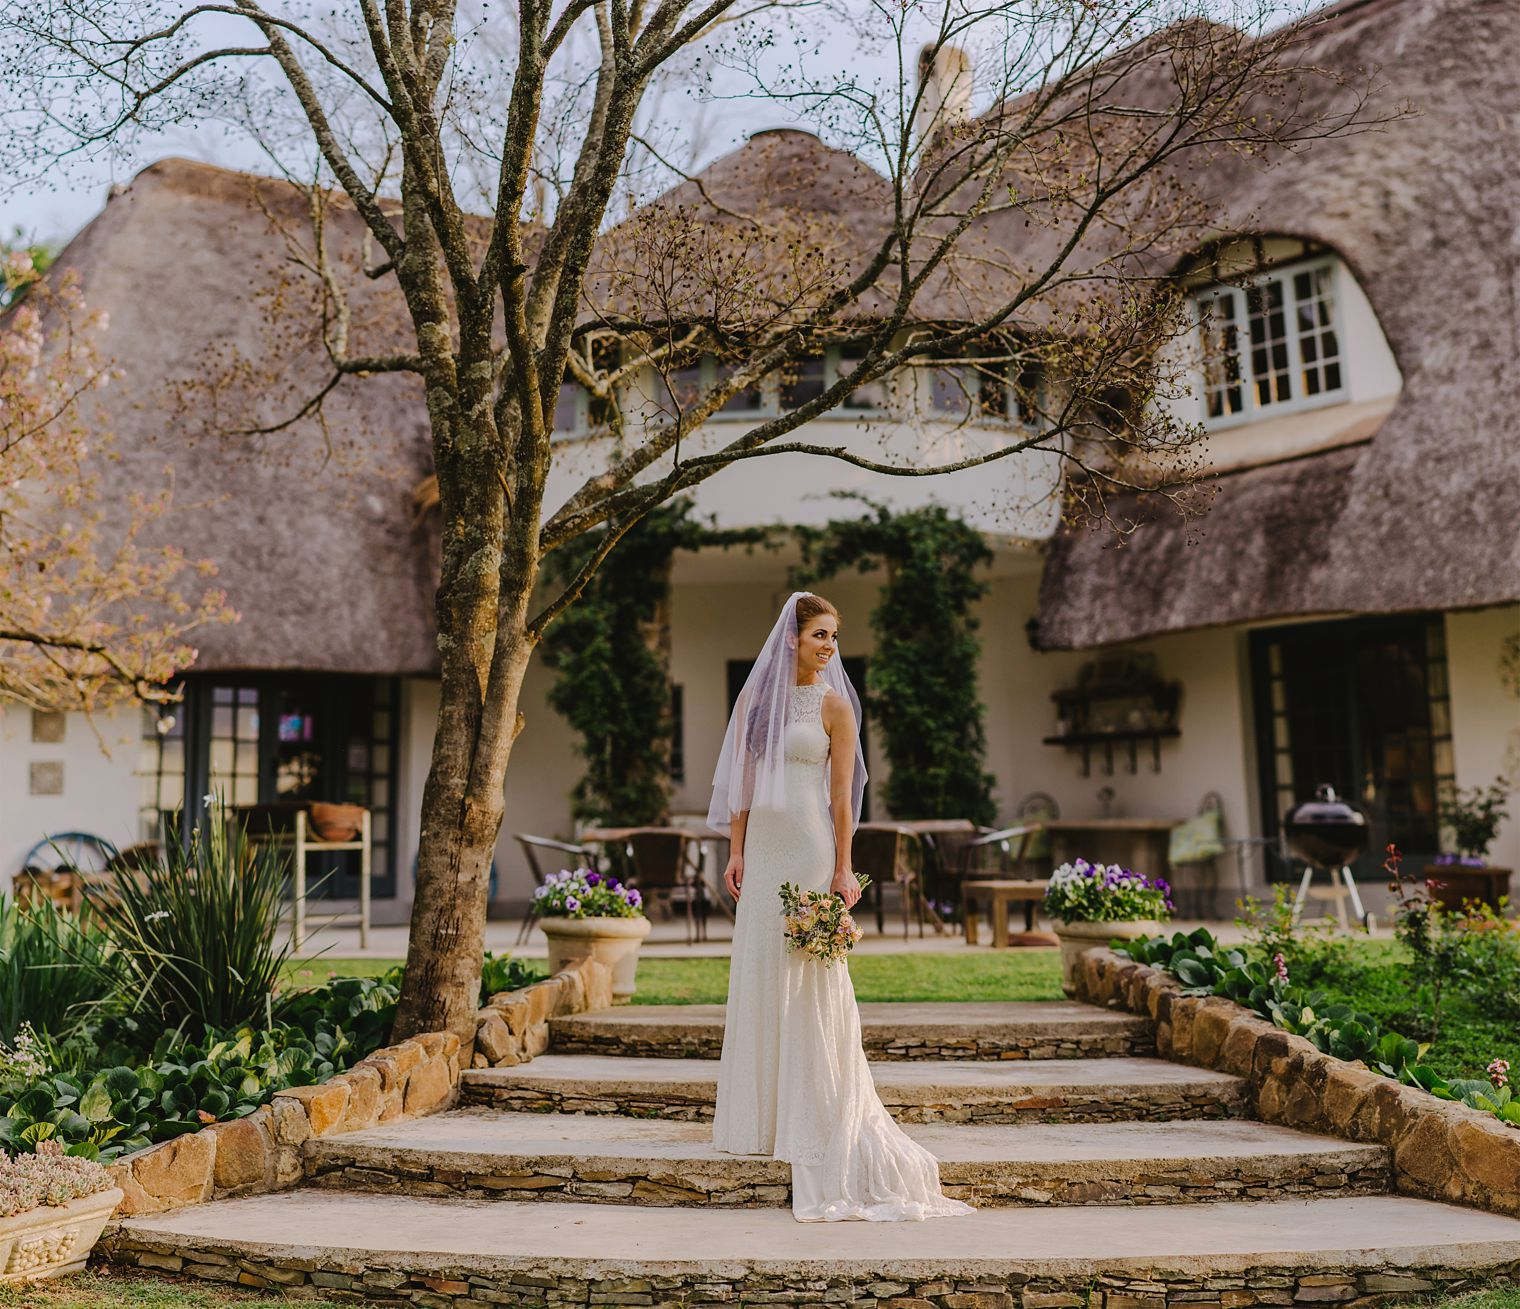 bride at orchards wedding venue in kzn